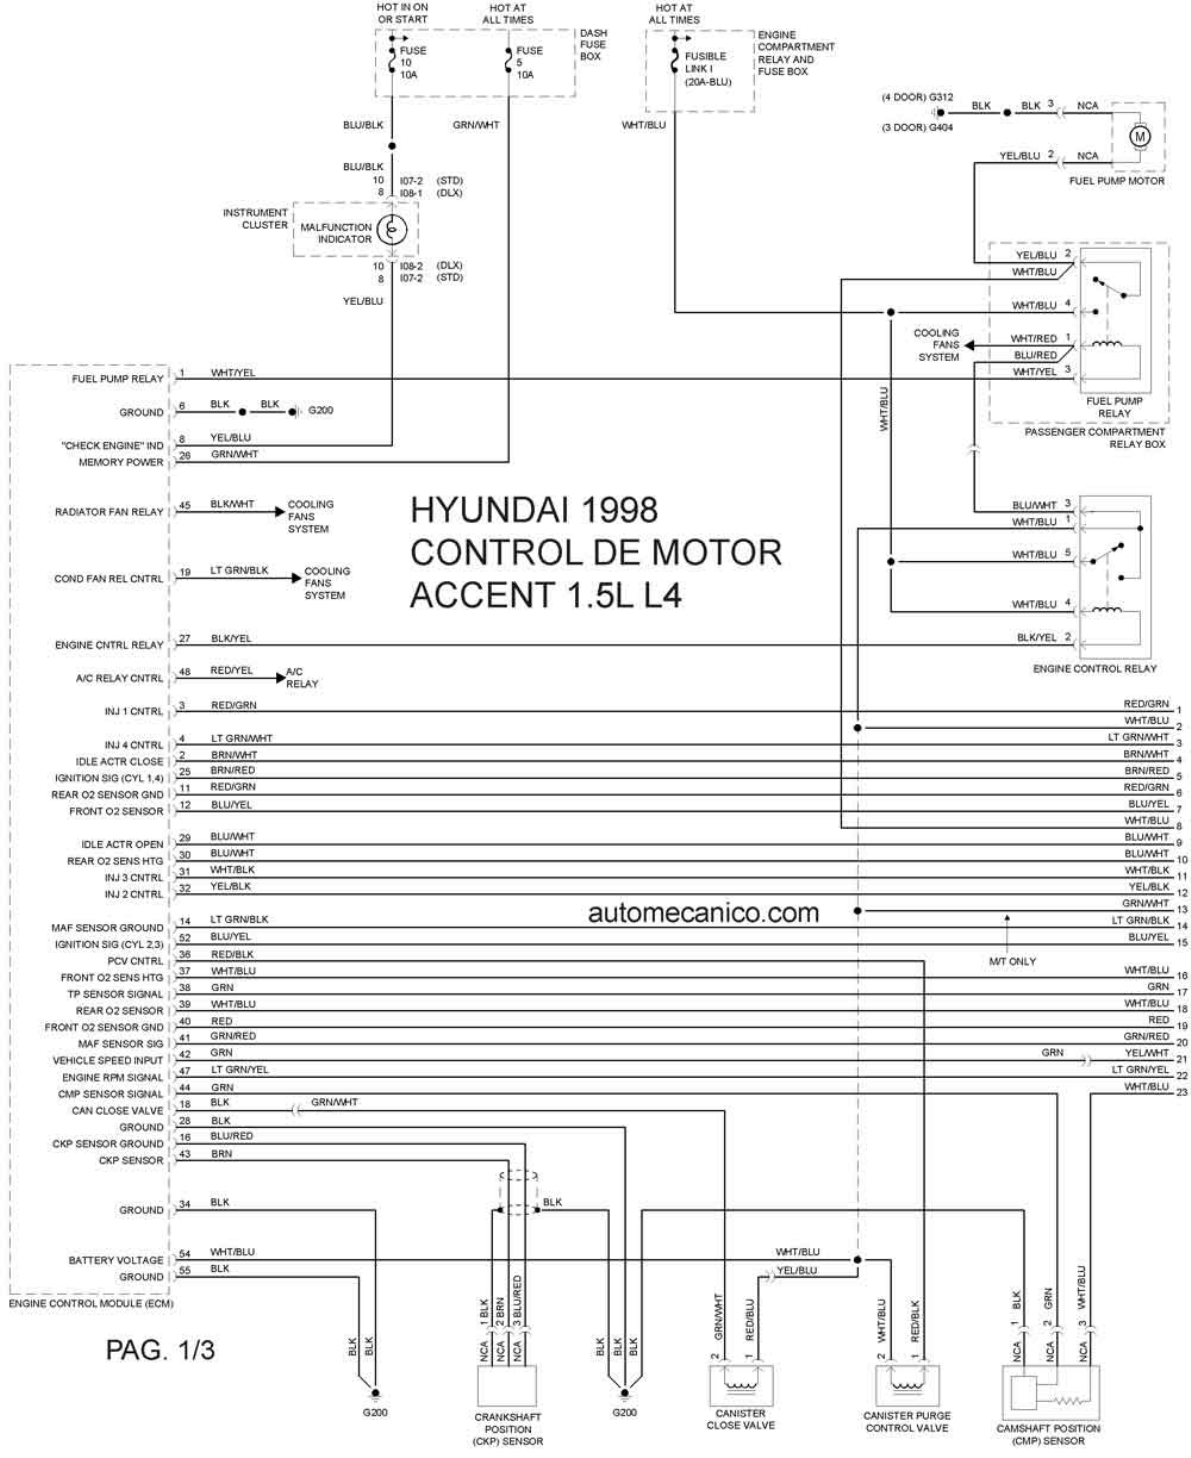 Hyundai Excel Wiring Diagram Download Reinvent Your 2009 Sonata Radio Free Picture Accent 1998 Misc Document Pdf Rh Manuals Co 2013